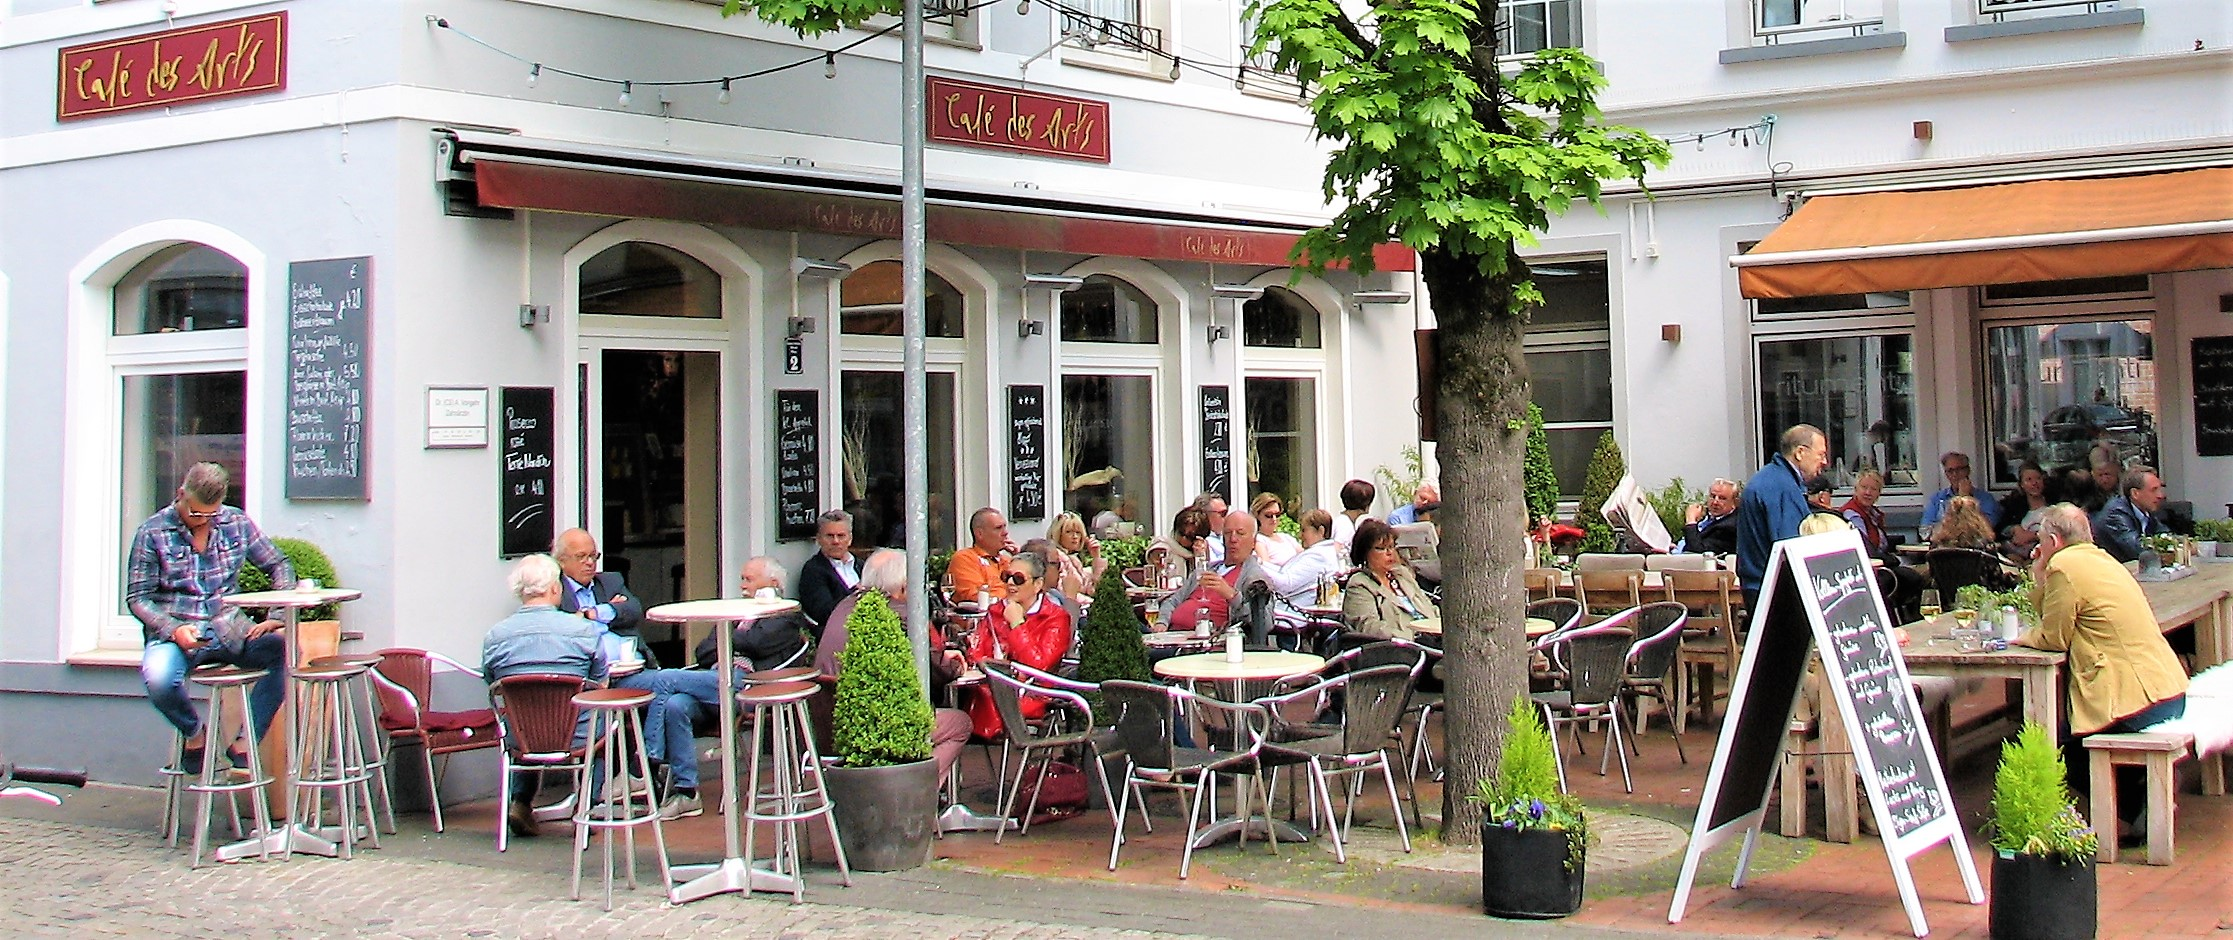 Dating cafe duisburg